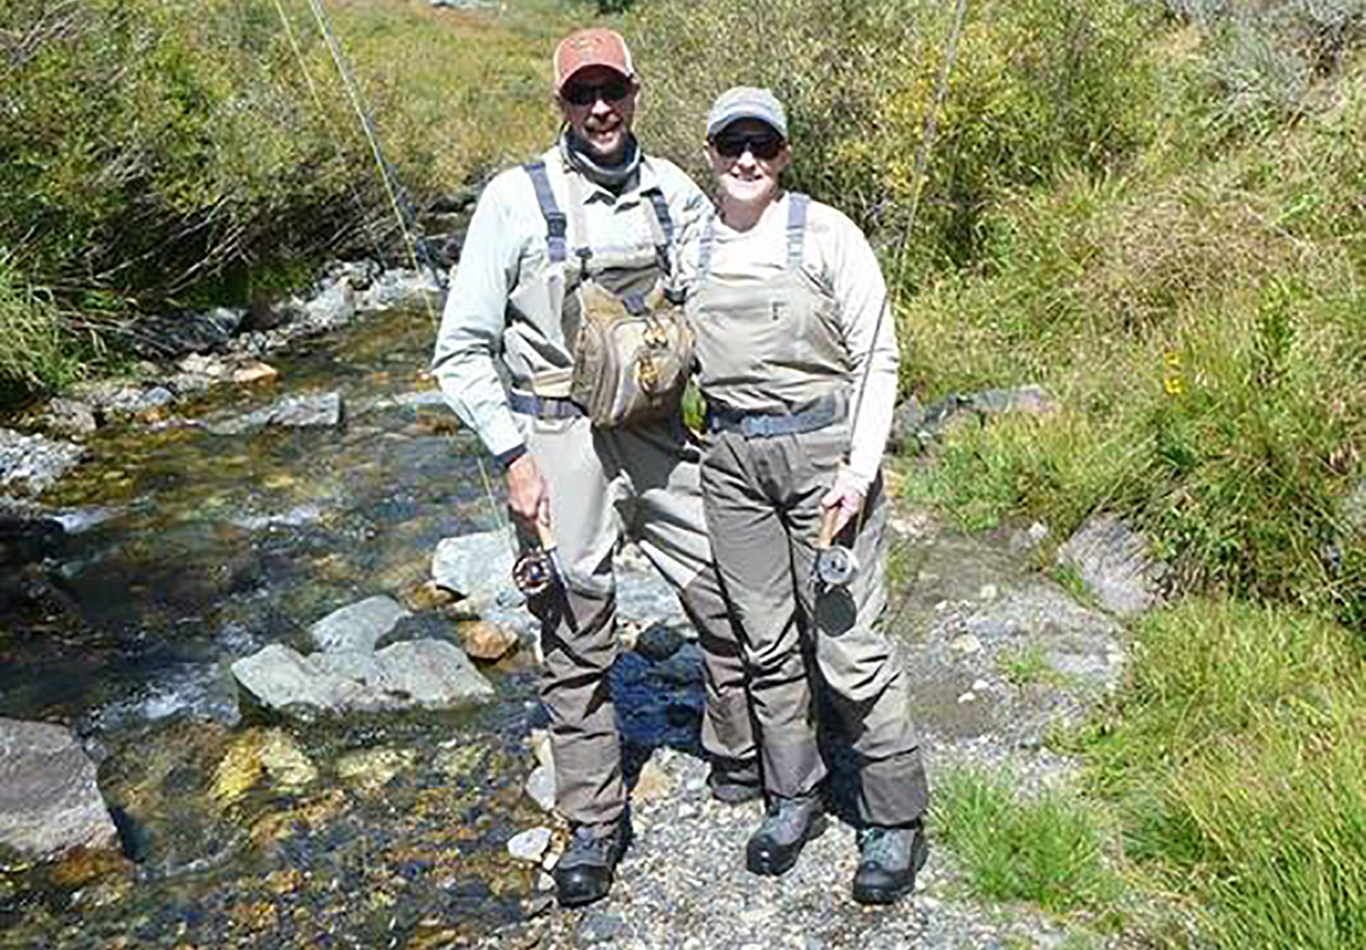 well-known-fly-fishing-guides-perish-tragically-in-fishing-accident-3-L